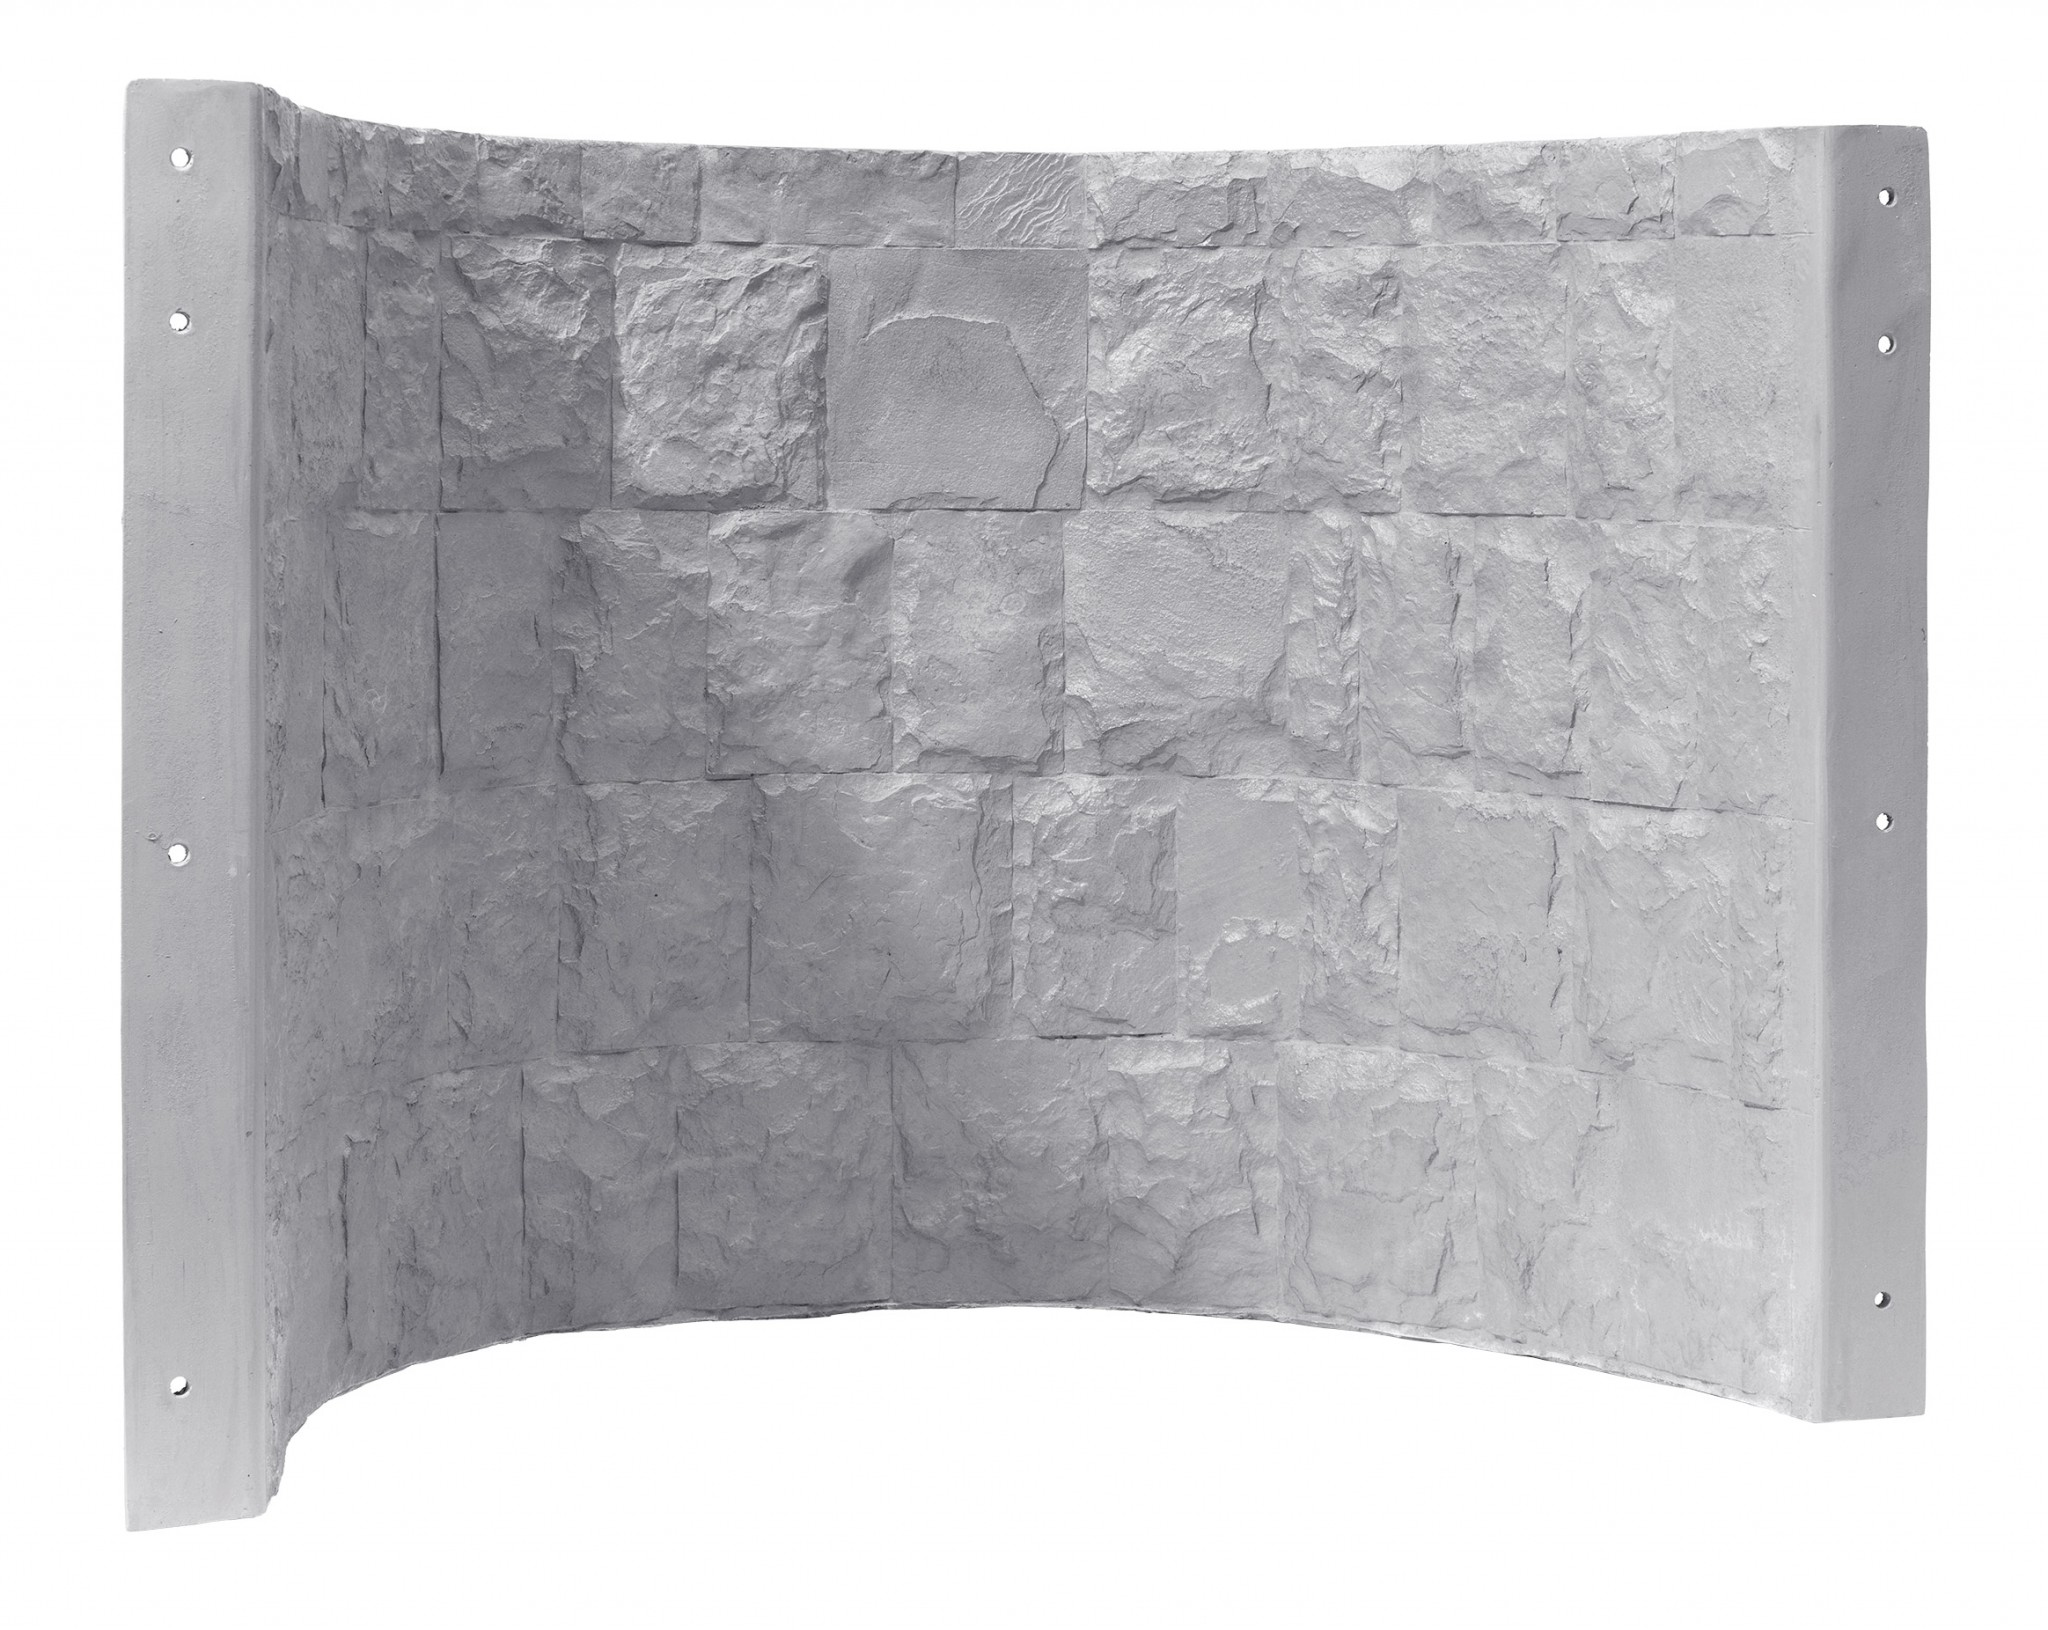 Gray faux stone Rockwell 42 series egress window well cover with steps built by RockWell egress window wells